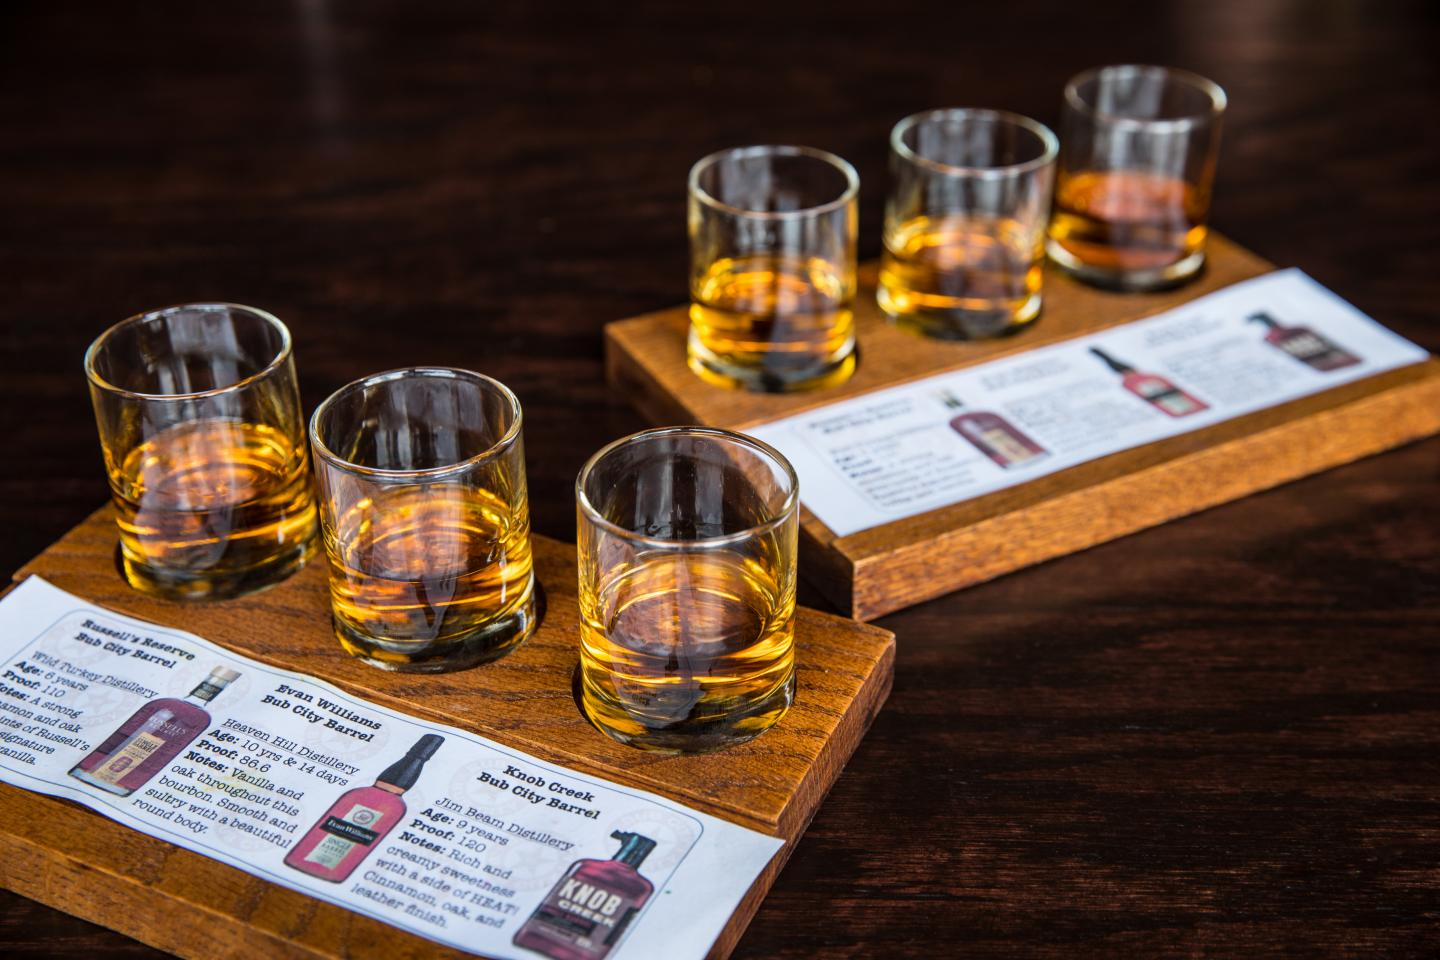 Whiskey Flights at Bub City